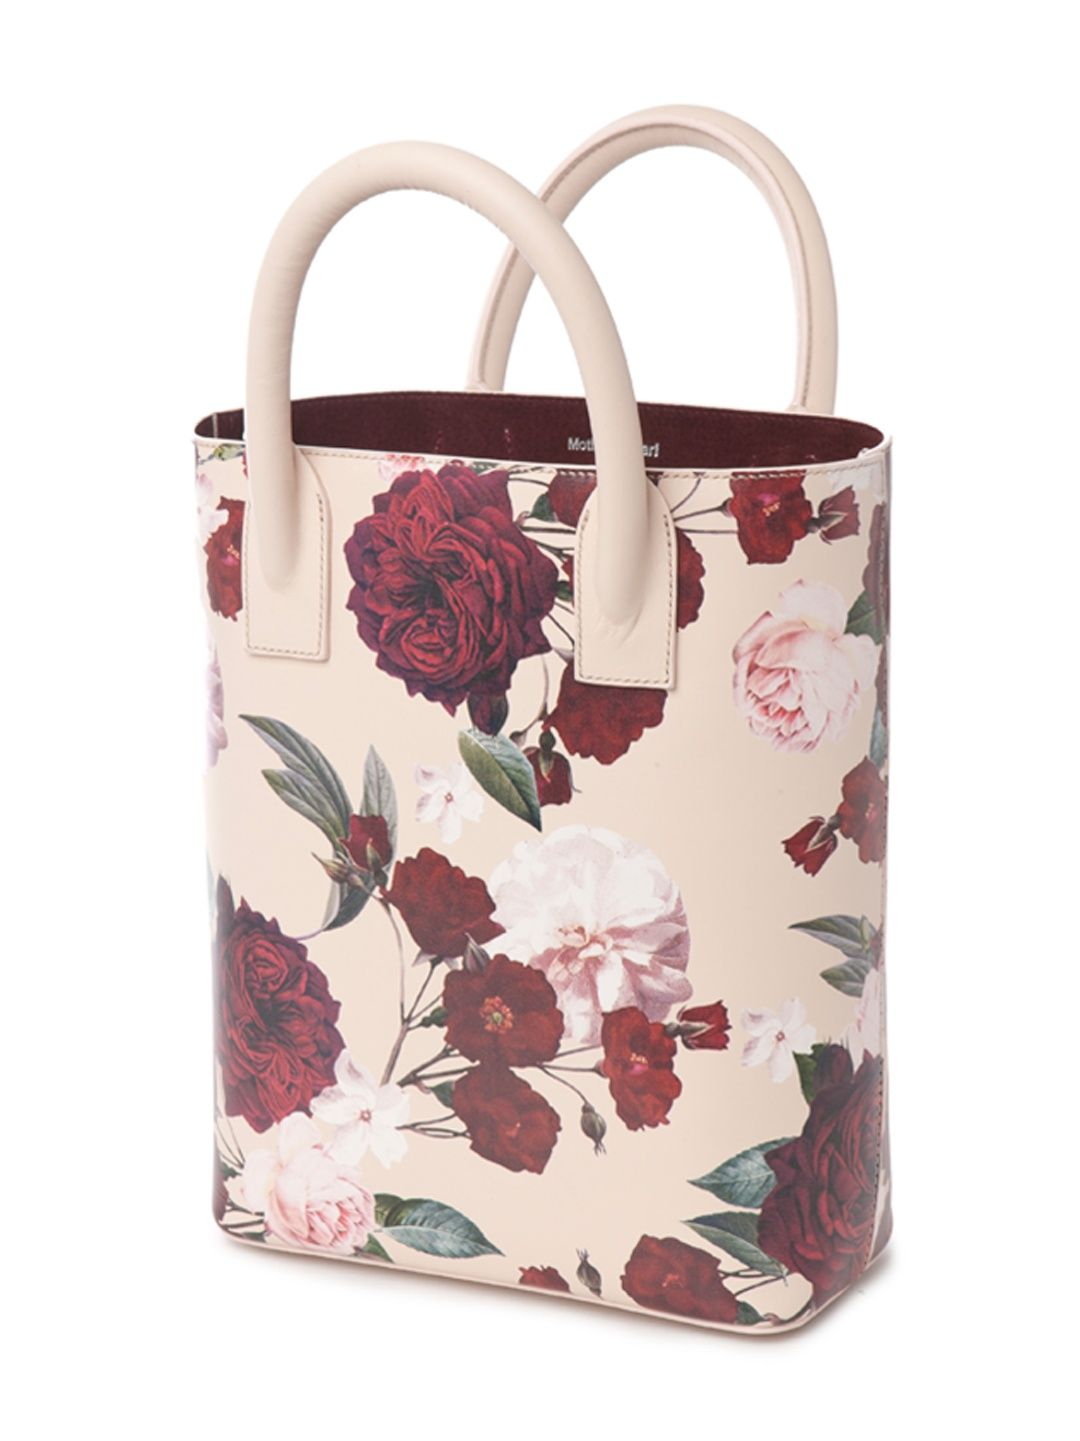 Mother of Pearl Hoxton Mini Tote Image 1